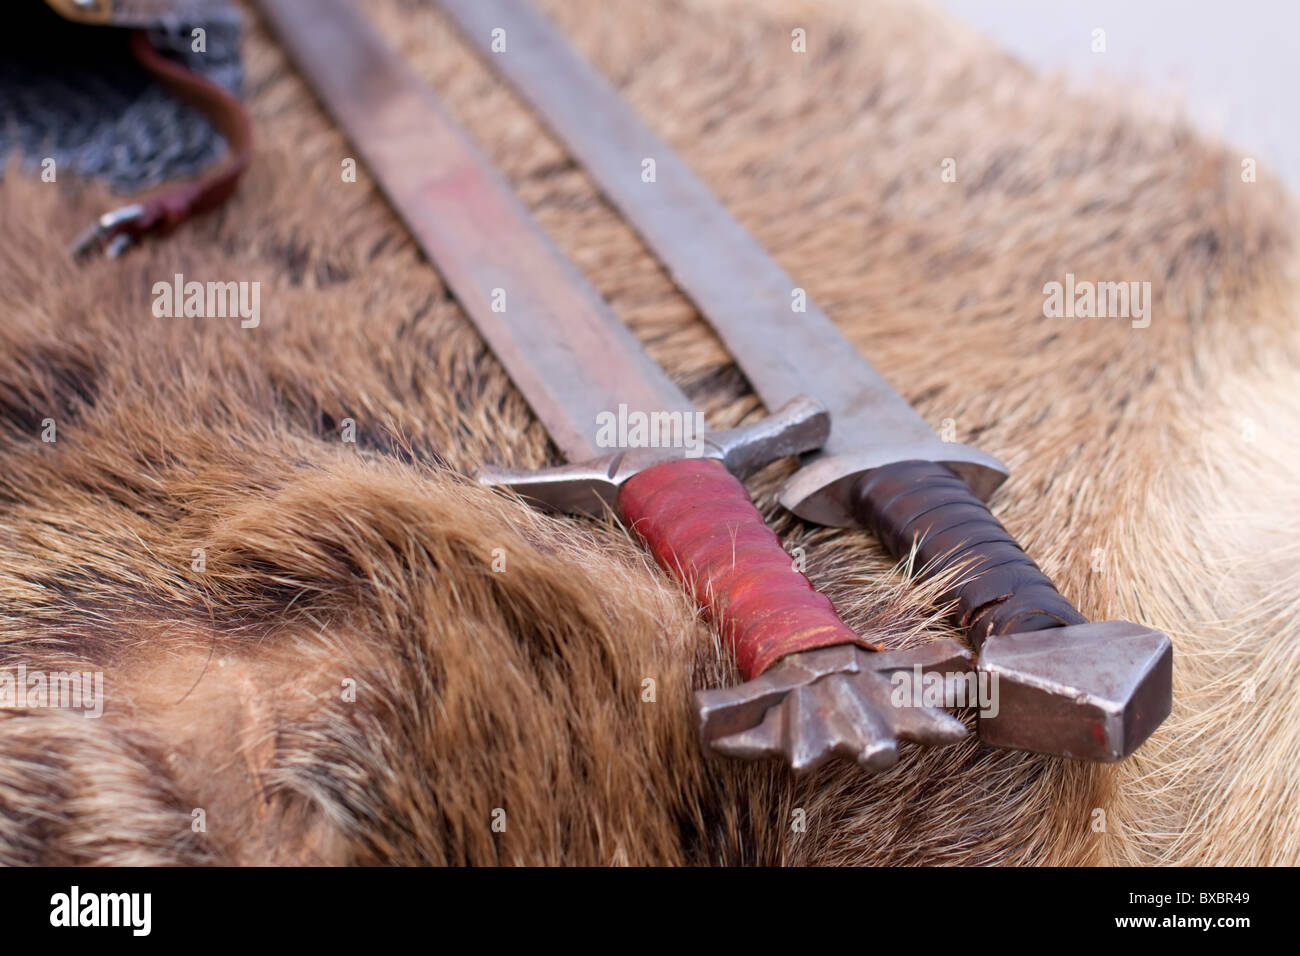 Two European medieval Slavic swords displayed on animal fur Stock Photo